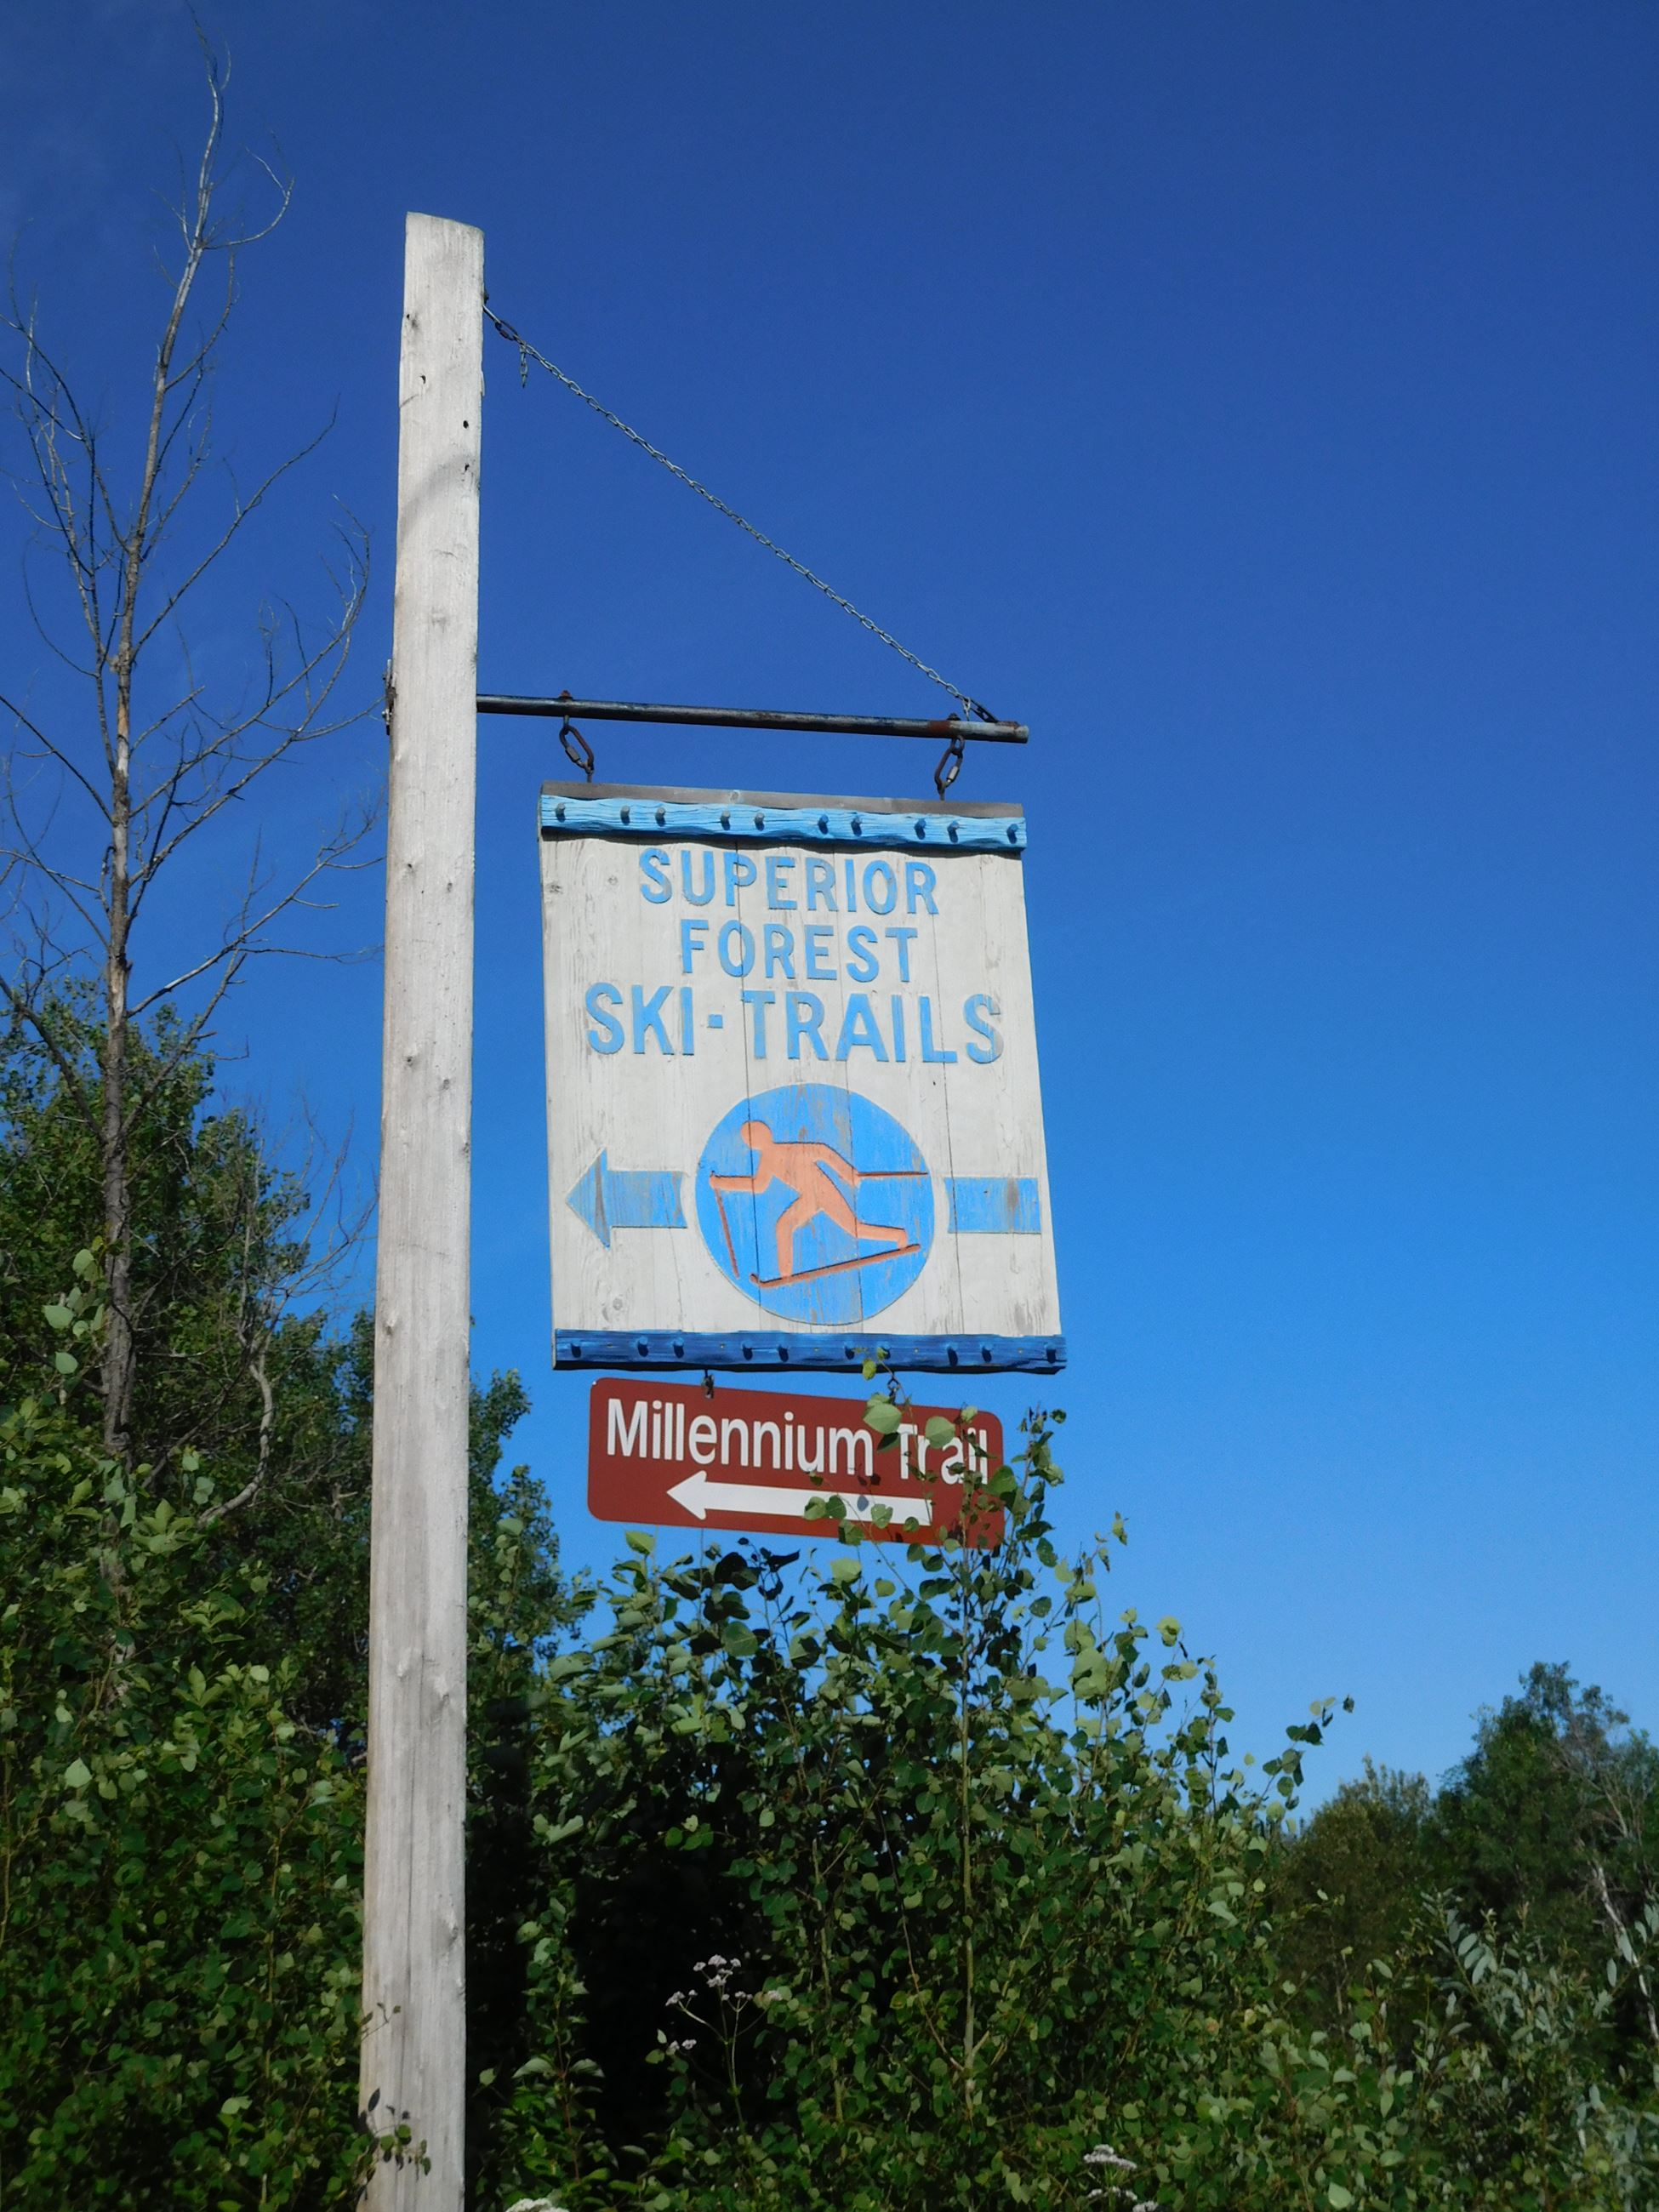 Sign at entrance to Millennium Trail head parking lot noting Municipal Forest Ski Trails and Millennium Trail